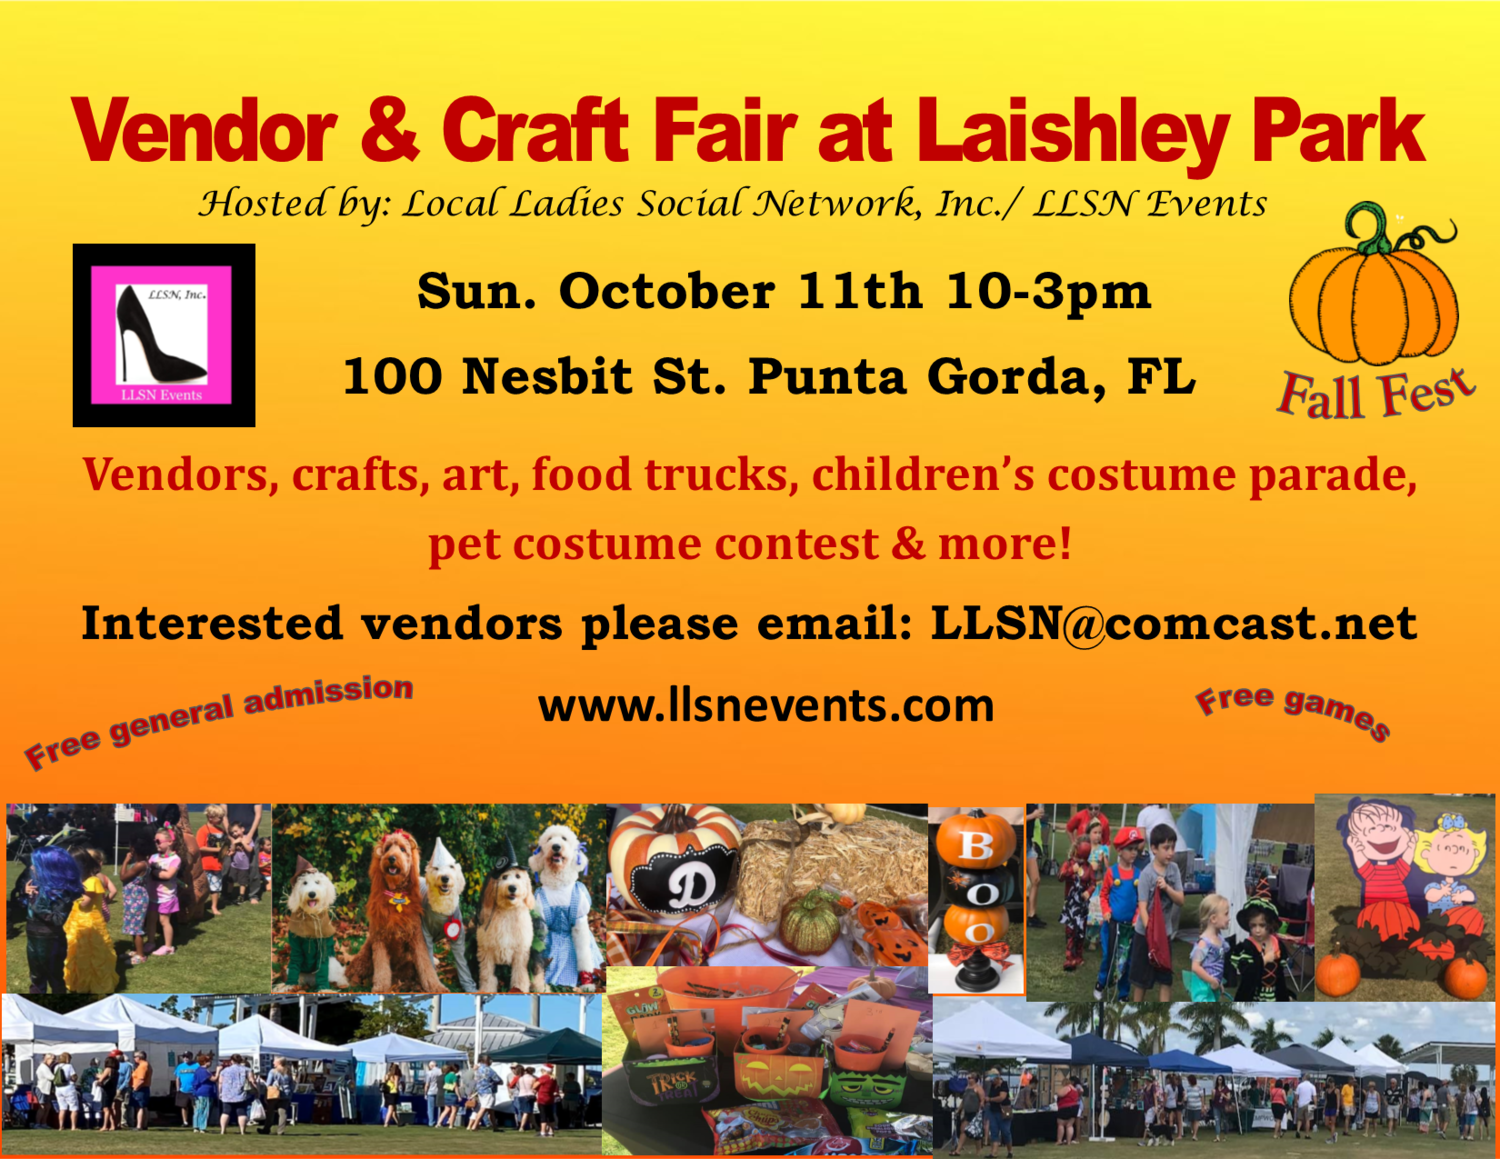 Vendor & Craft Fair at Laishley Park- October 11th- Fall Fest